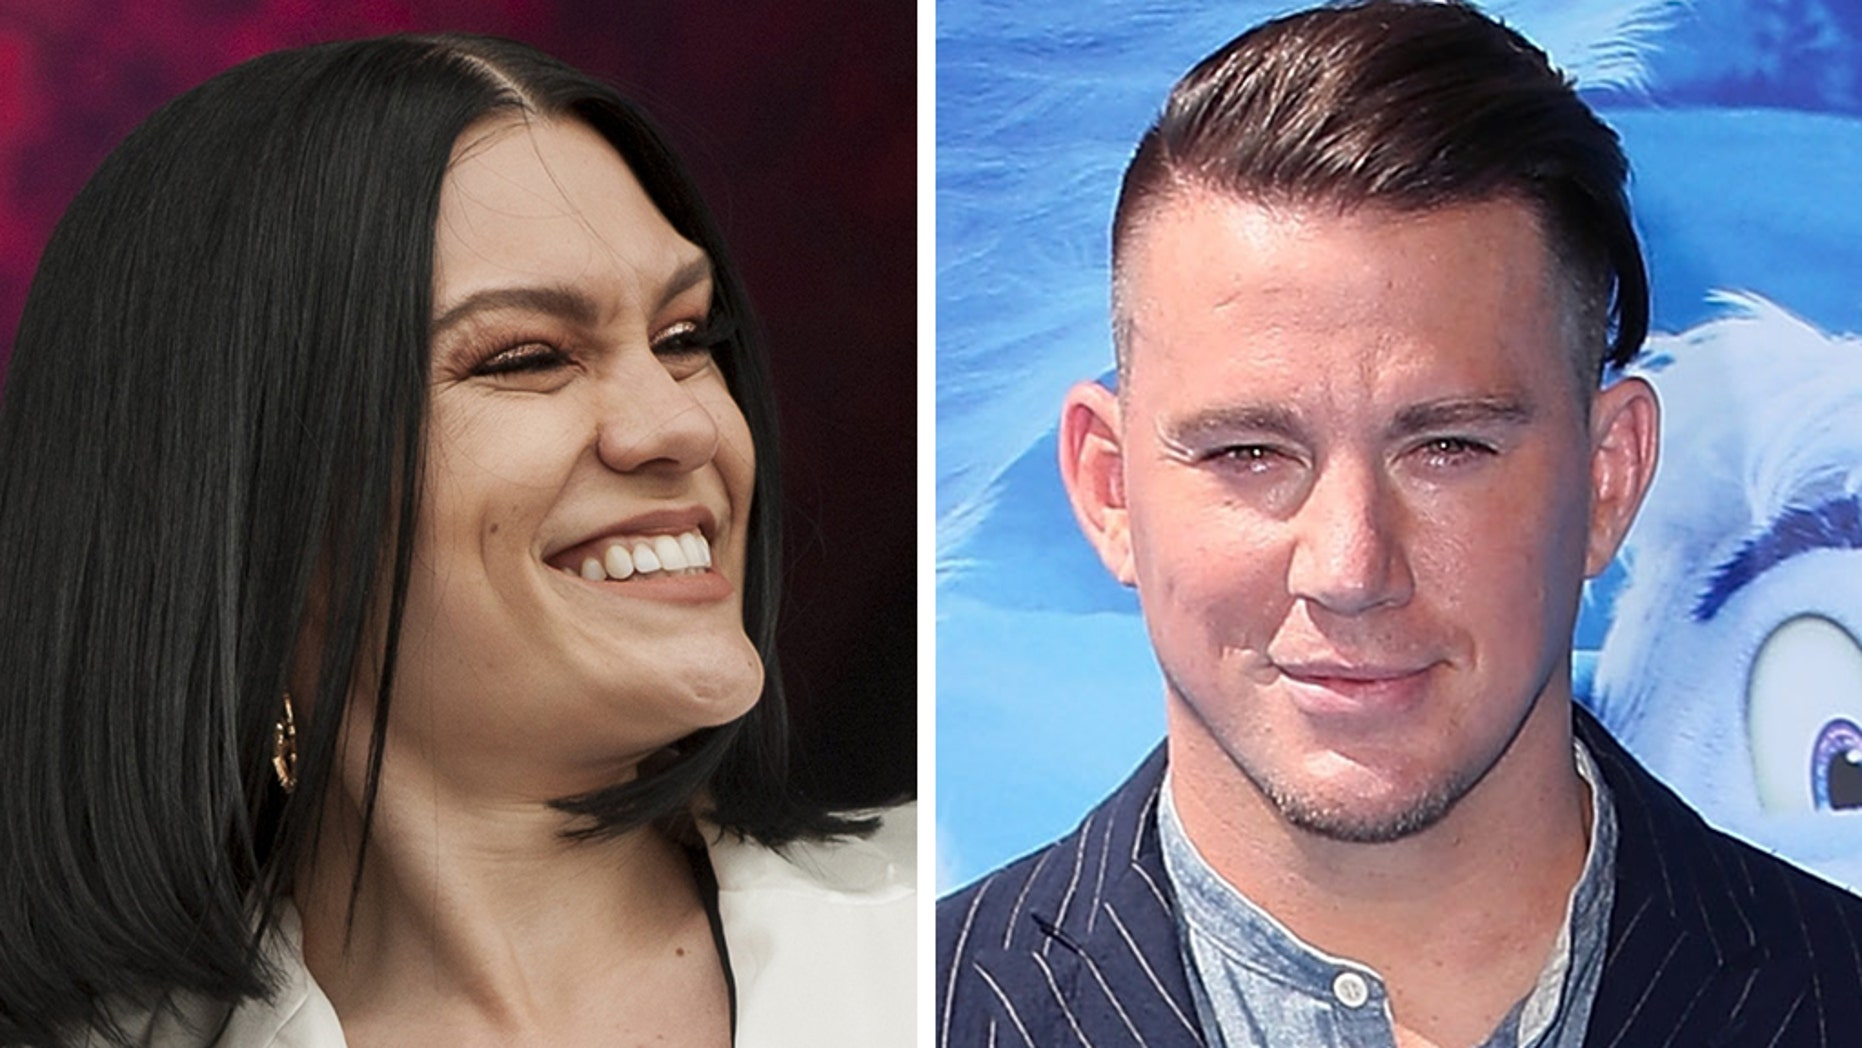 Jessie J and Channing Tatum are reportedly dating, according to multiple outlets.